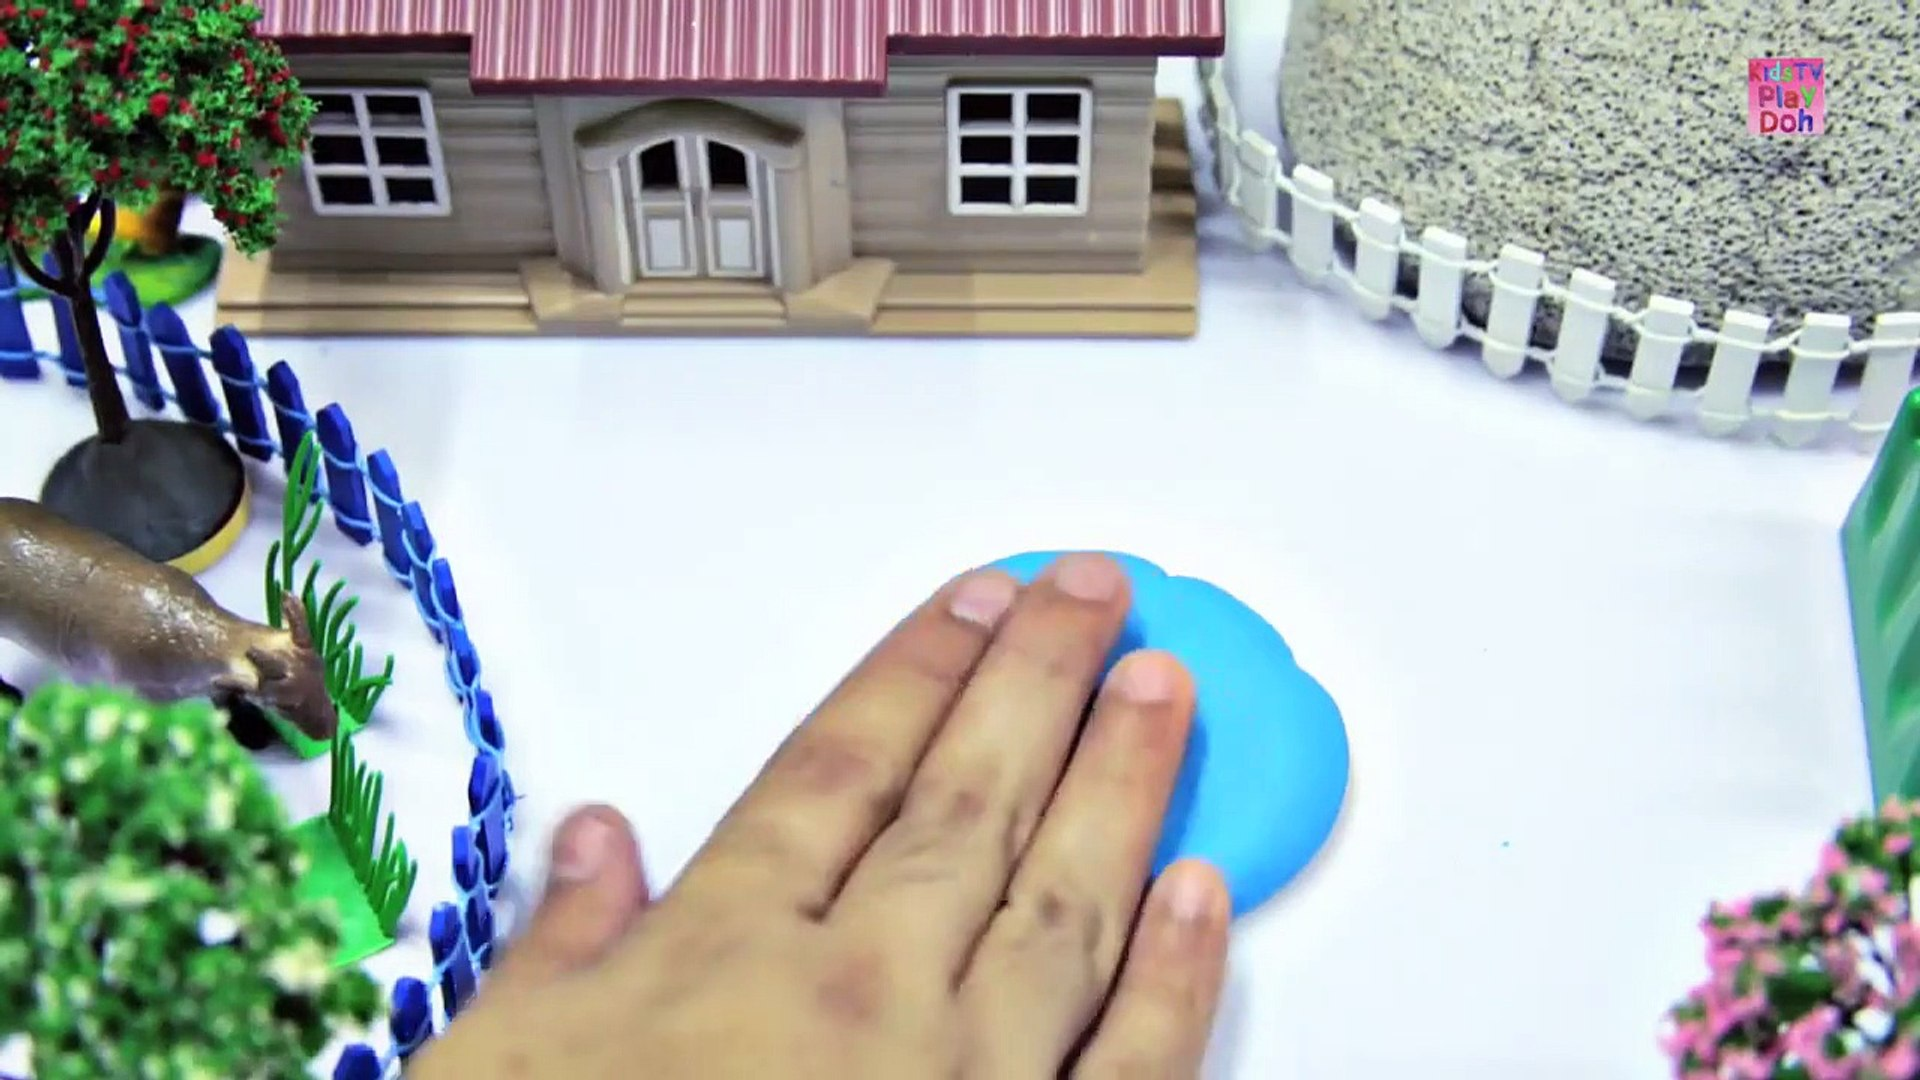 Learn Colors With Play Doh _ Play Doh Videos for Kids _ Kids Learning Videos  _ Play Doh Fish